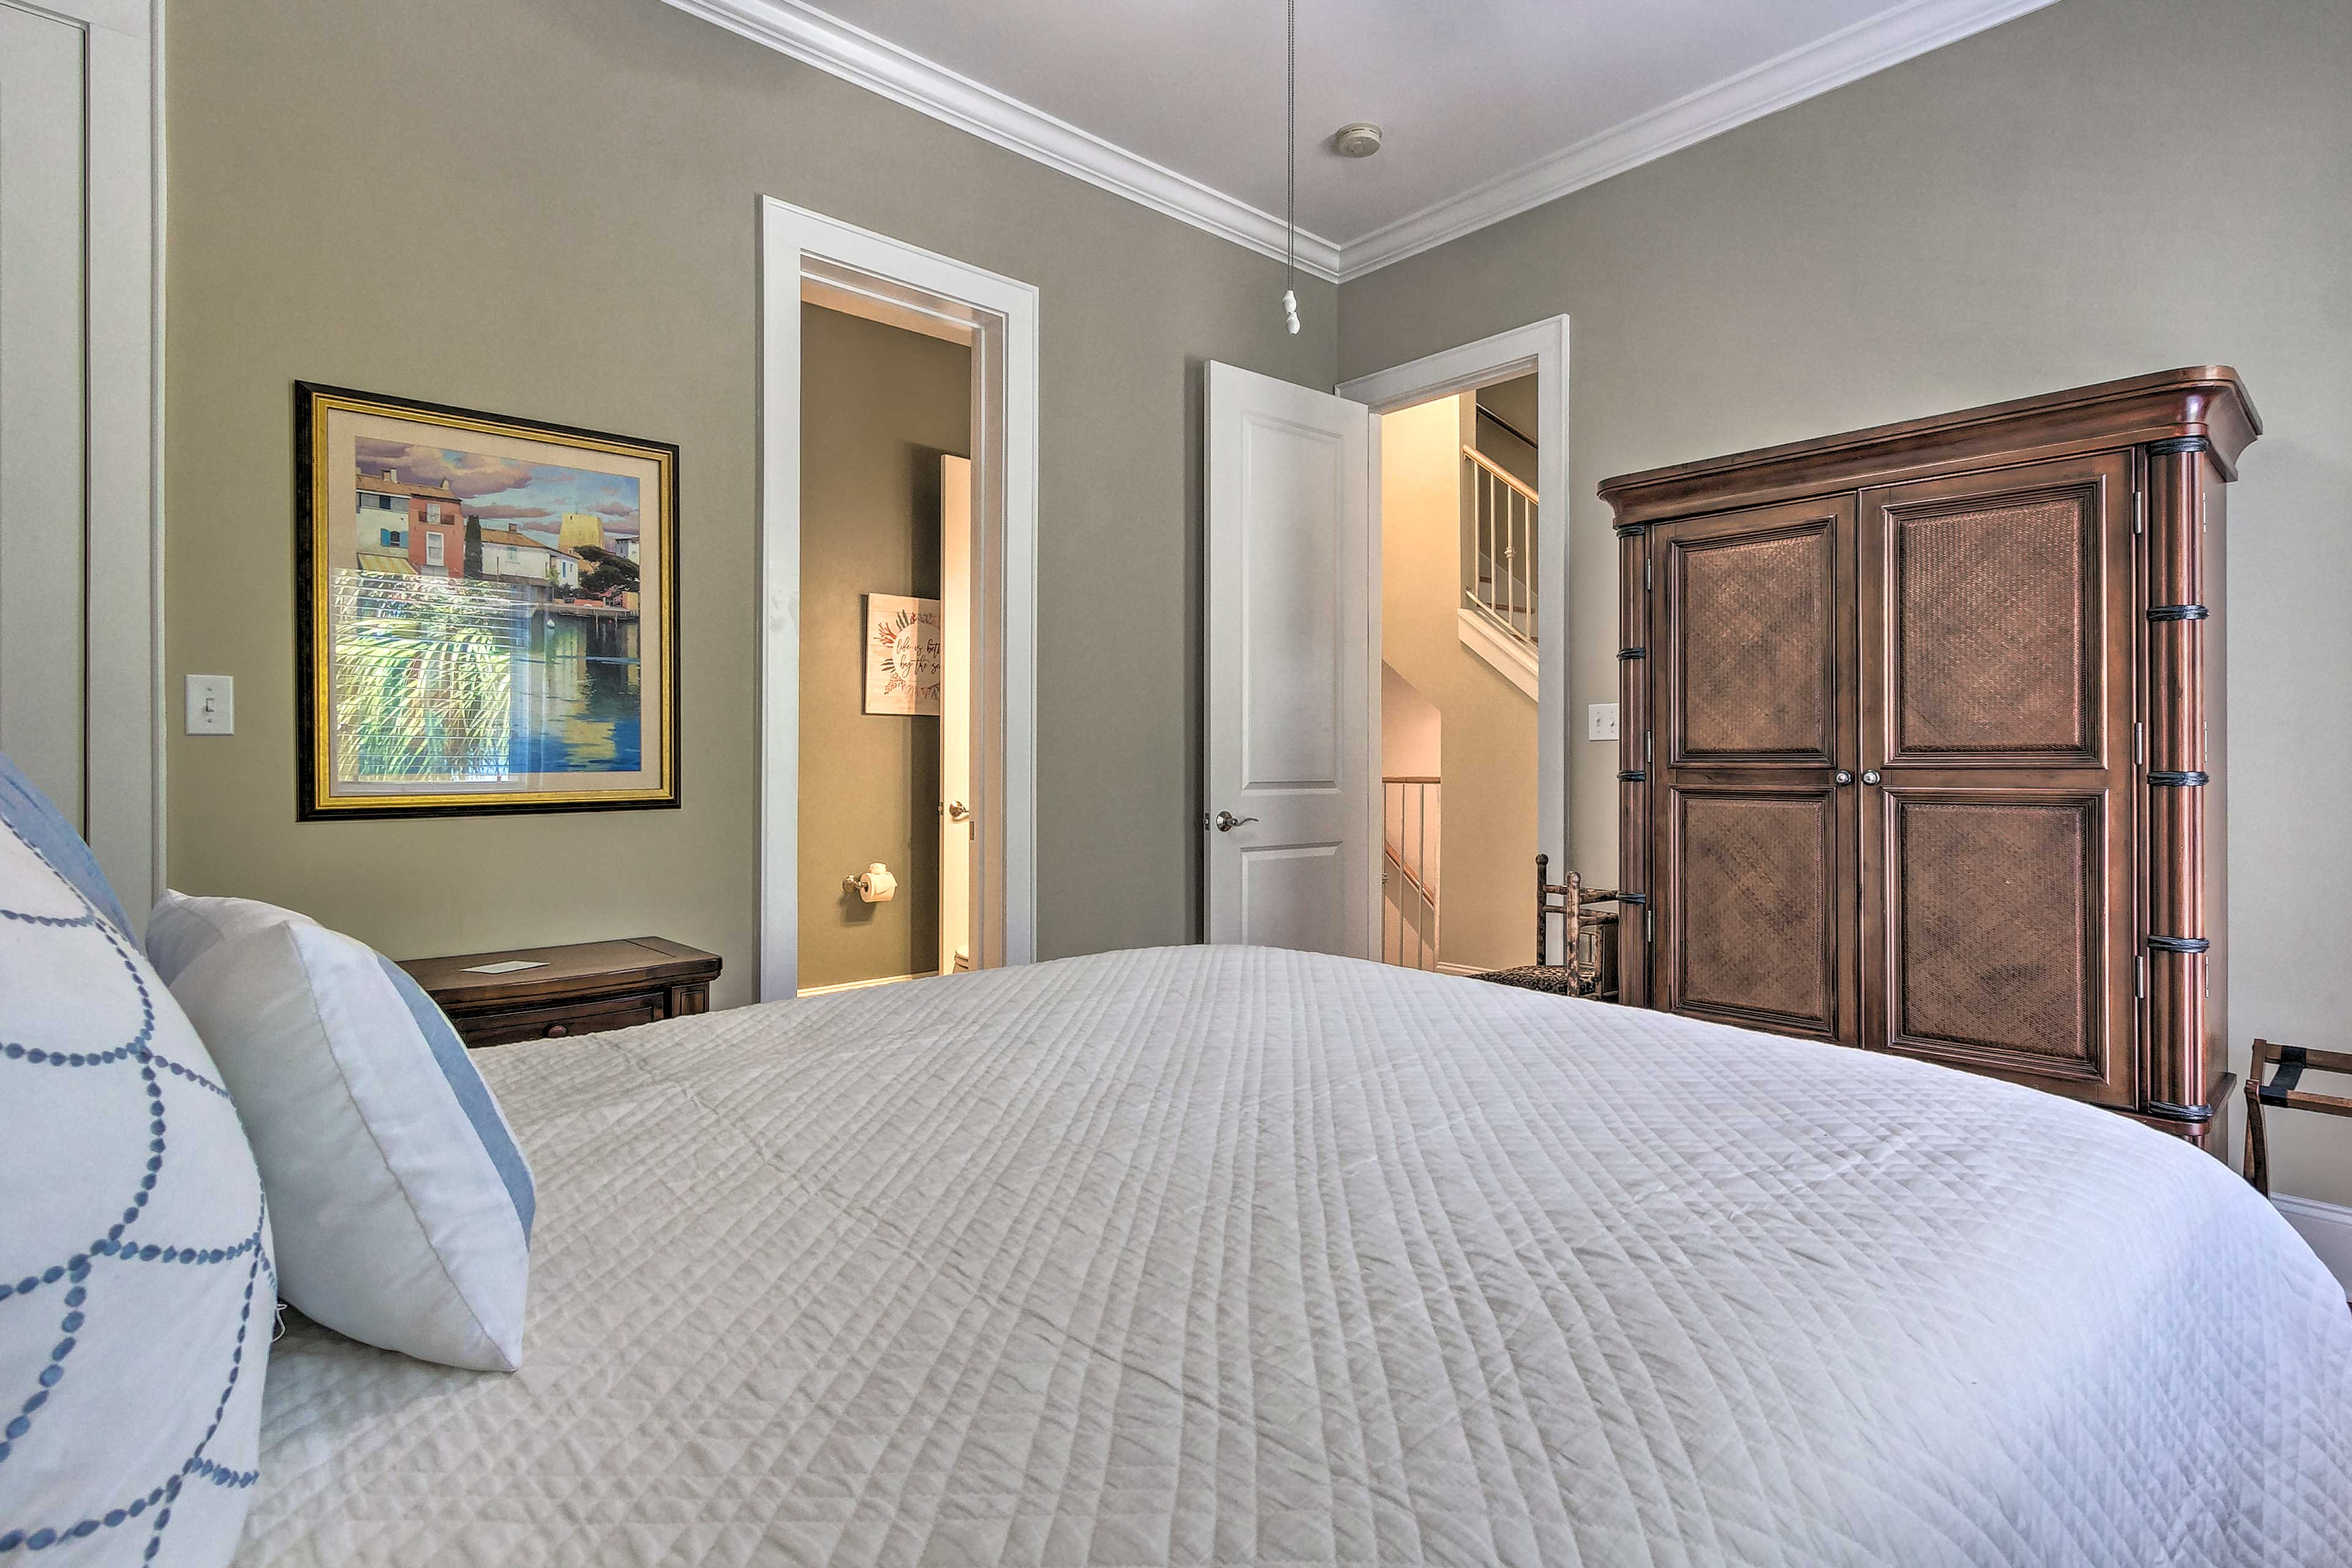 Enjoy plenty of privacy in each of these comfortable bedrooms.